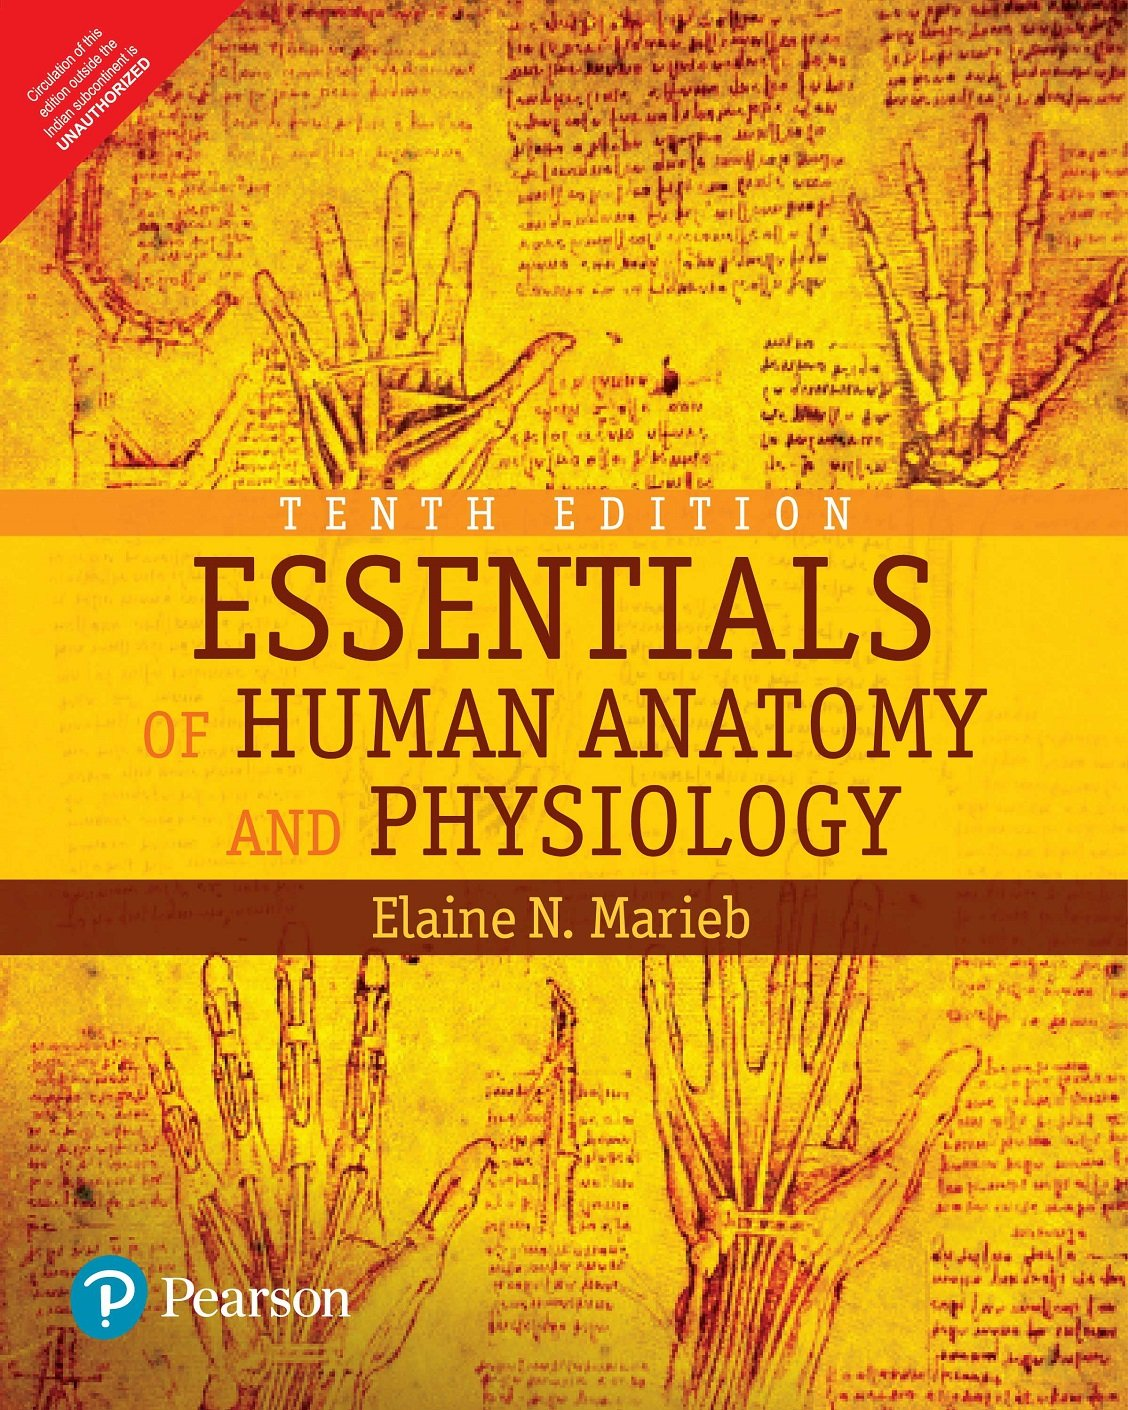 Books :: Essentials of Human Anatomy & Physiology, 10th Edition